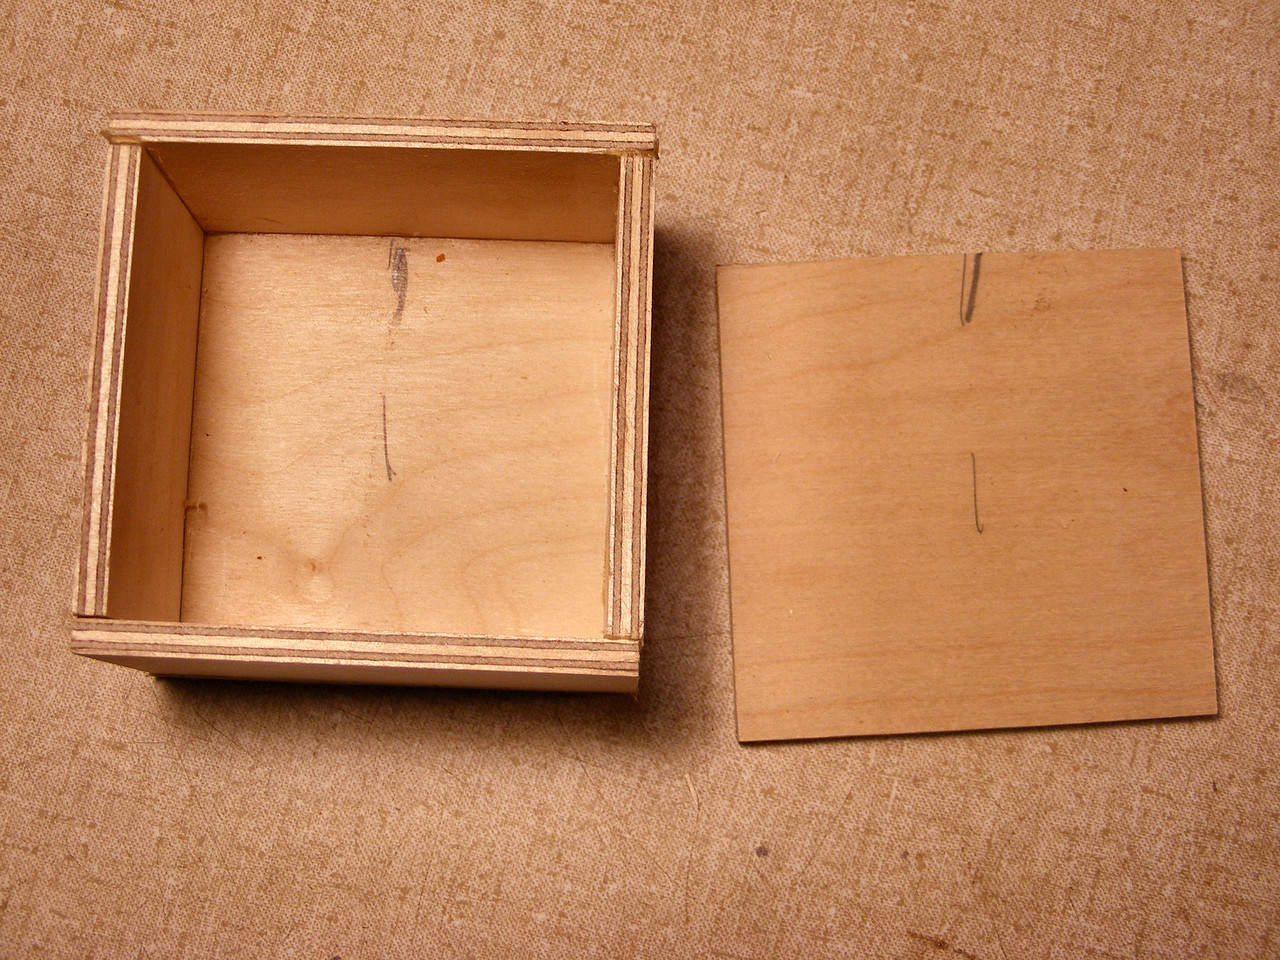 #6 Making a Tiny Sq Box <br />  I use the long side pieces as the front and back of the box, and the short pieces as the ends or sides of the box. The over-lay also adds strength to the box as you can see in picture #32 the over-lay crosses the side joint and then the front and back over-lay crosses the side over-lay. This all adds strength to the simple butt joints that I use.